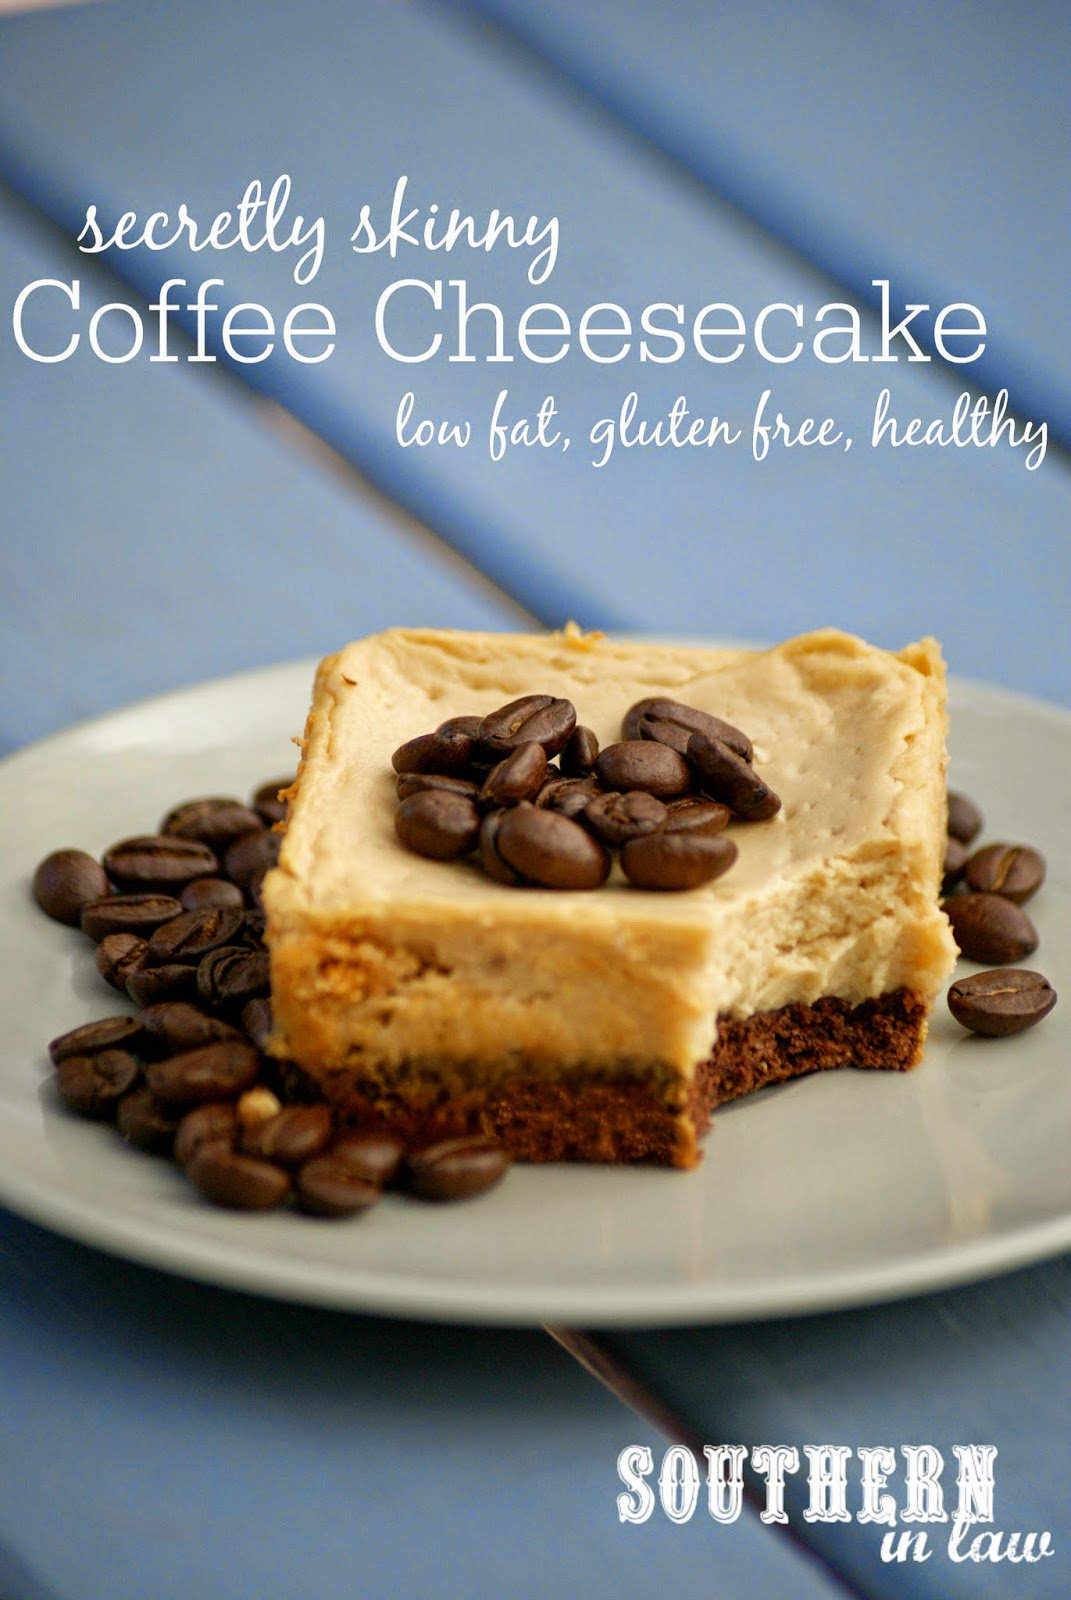 Secretly Skinny Coffee Cheesecake with a Chocolate Cookie Crust Recipe - low fat, gluten free, low sugar, high protein